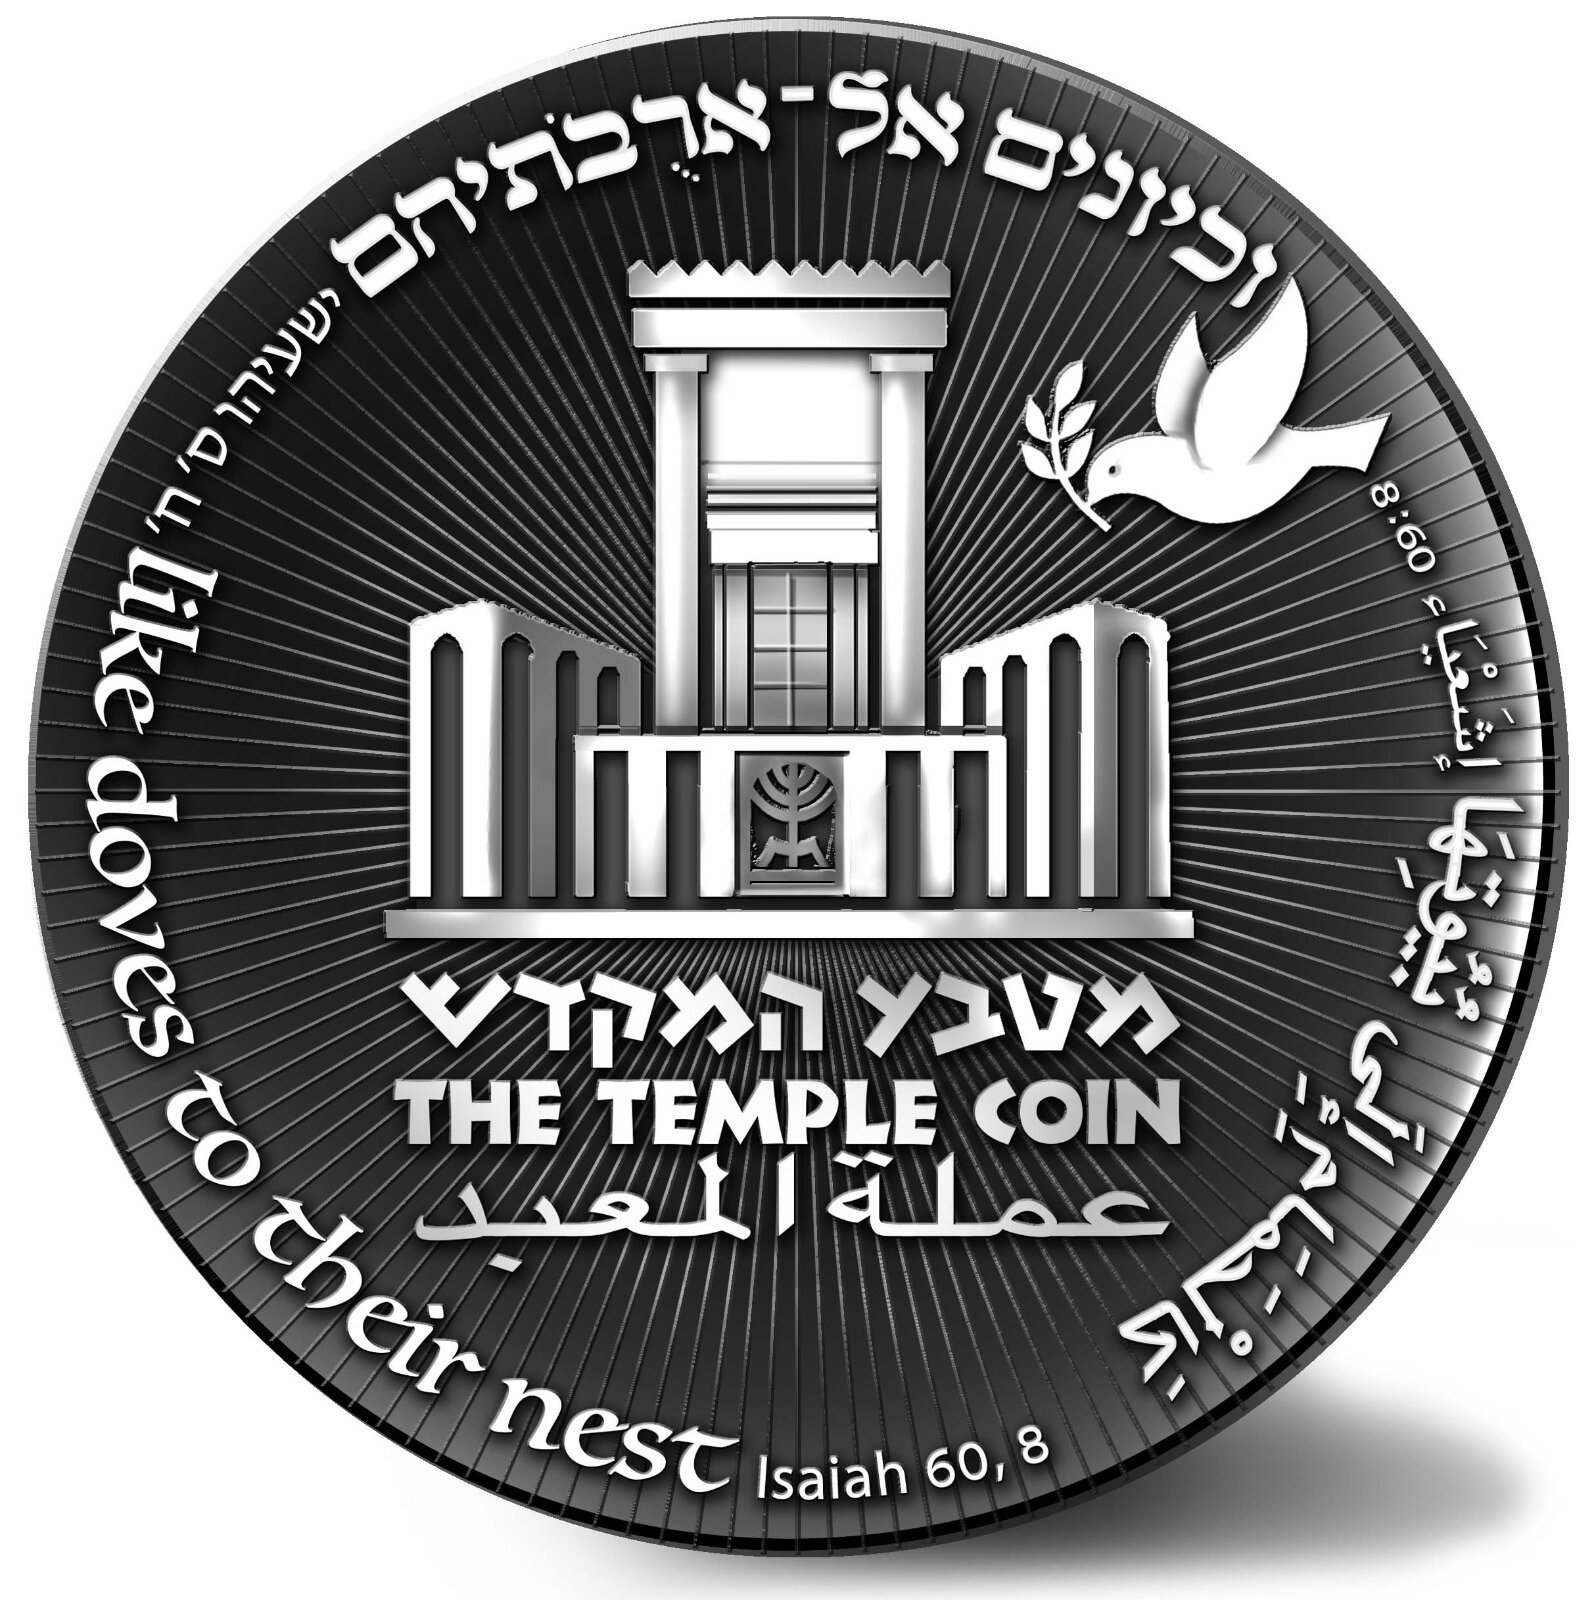 The 70 Years Israel Redemption - Temple Coin silver plated